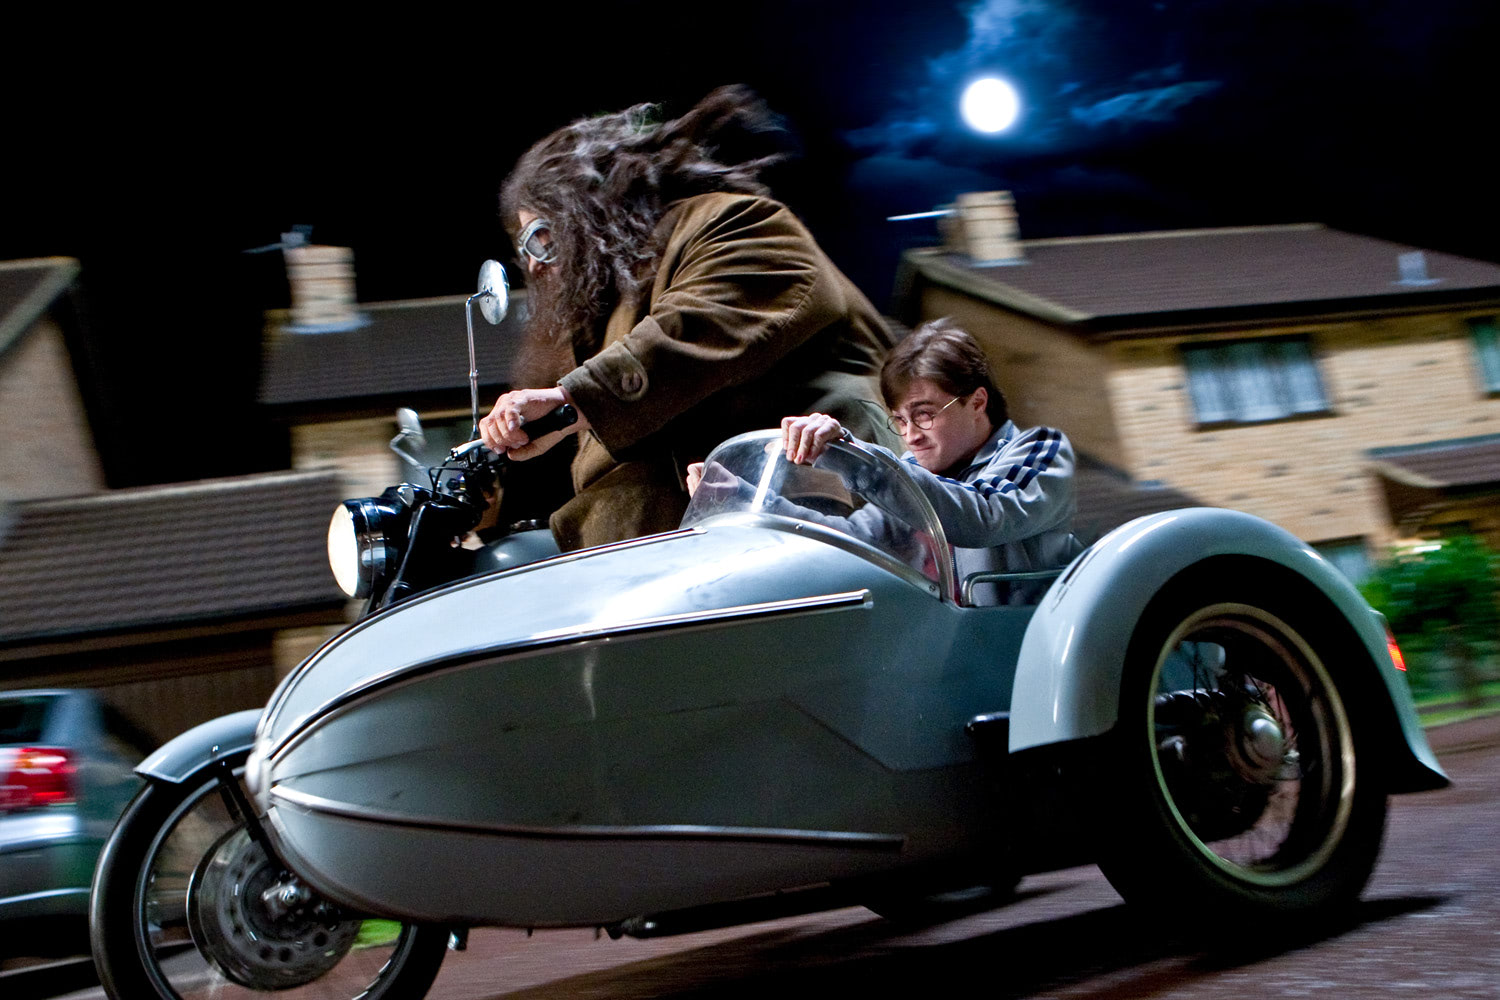 Harry rides in Hagrid's sidecar